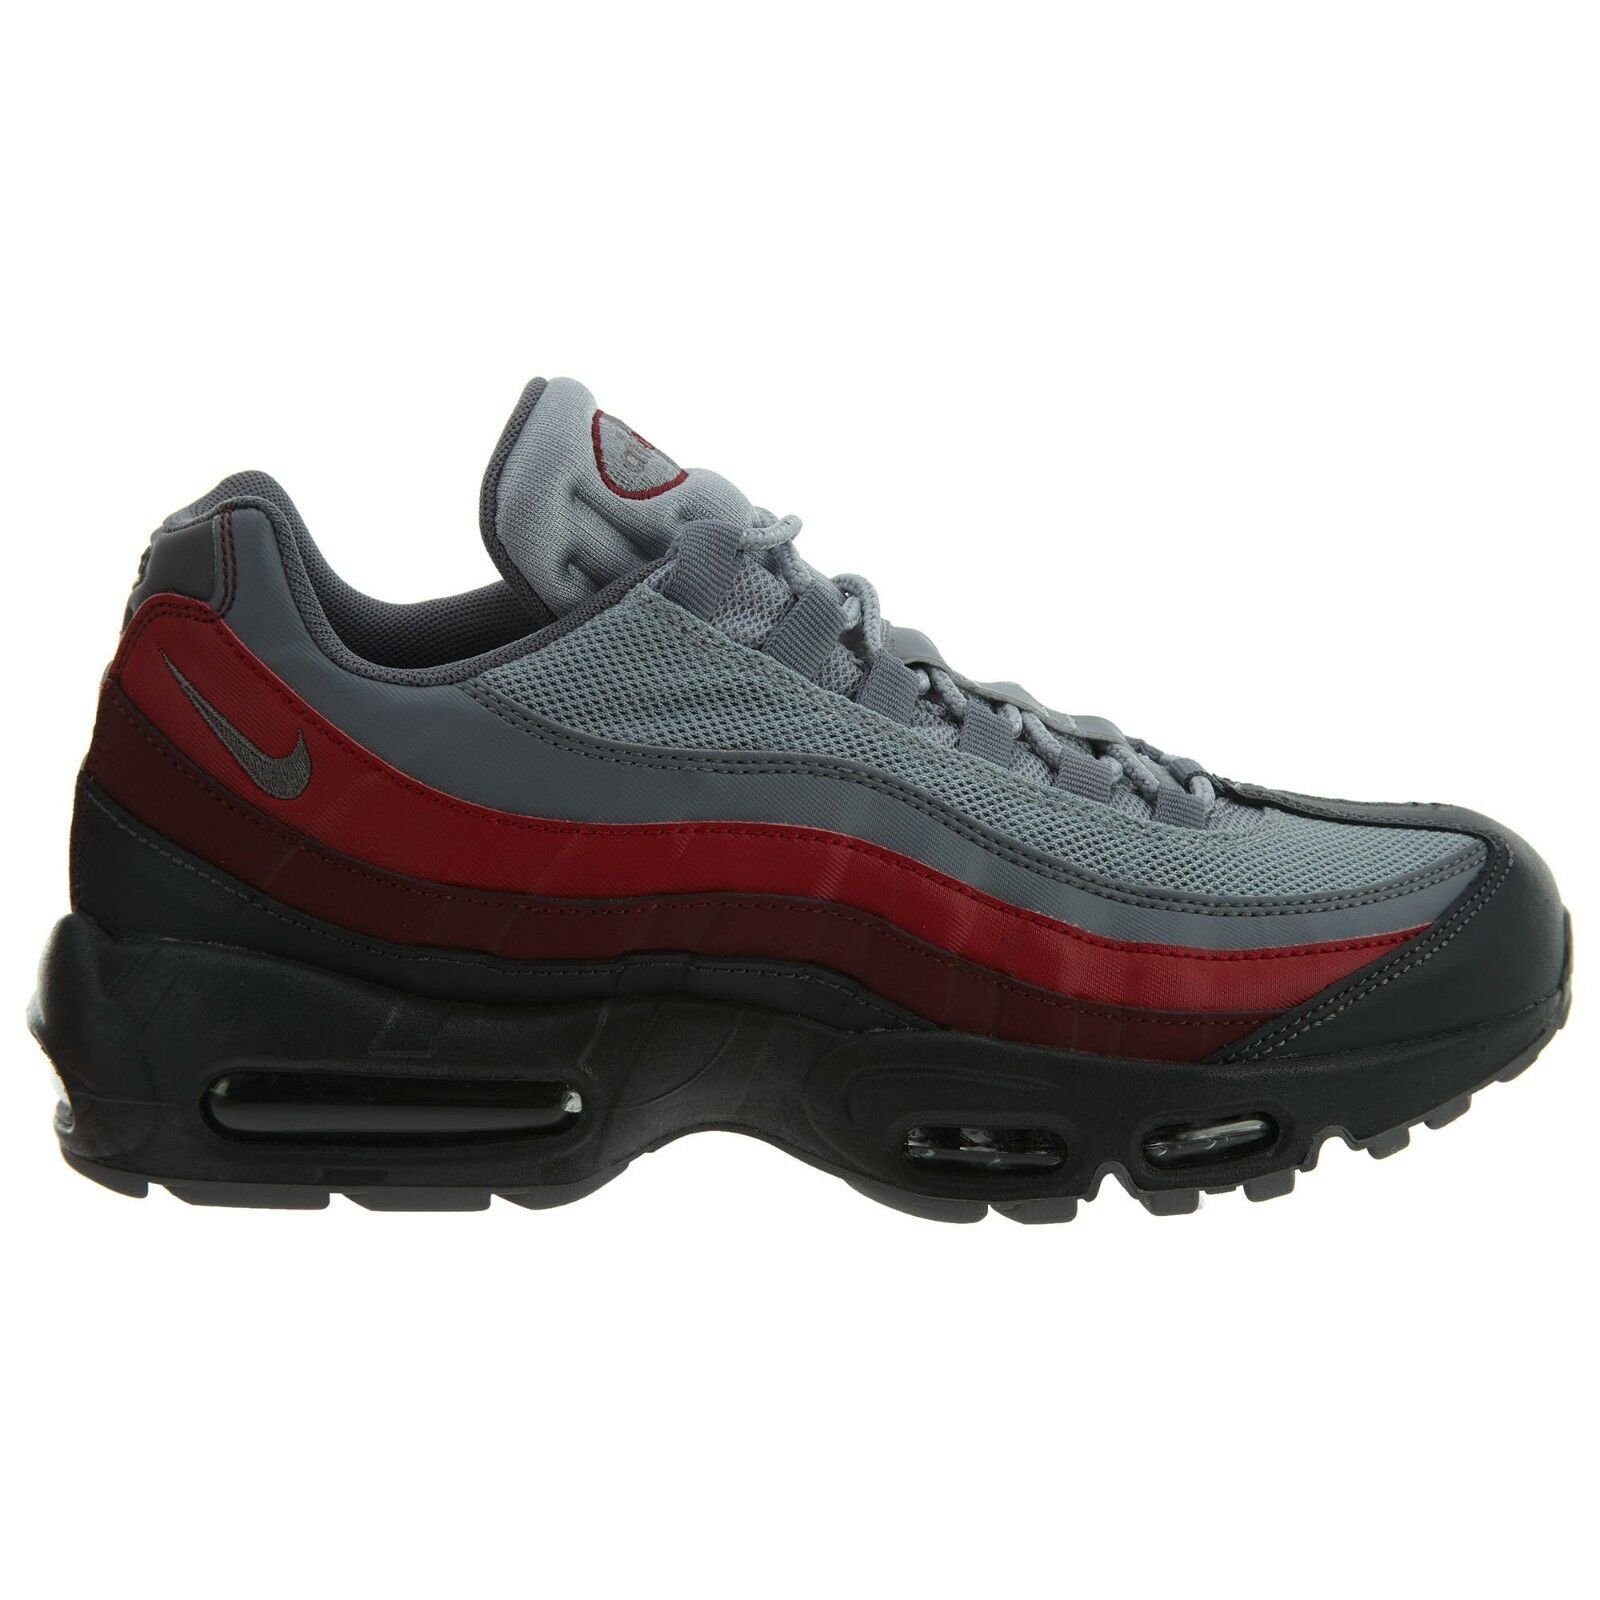 Nike Air Max 95 Essential Mens 749766-025 Cool Grey Red Running Shoes Comfortable Comfortable and good-looking